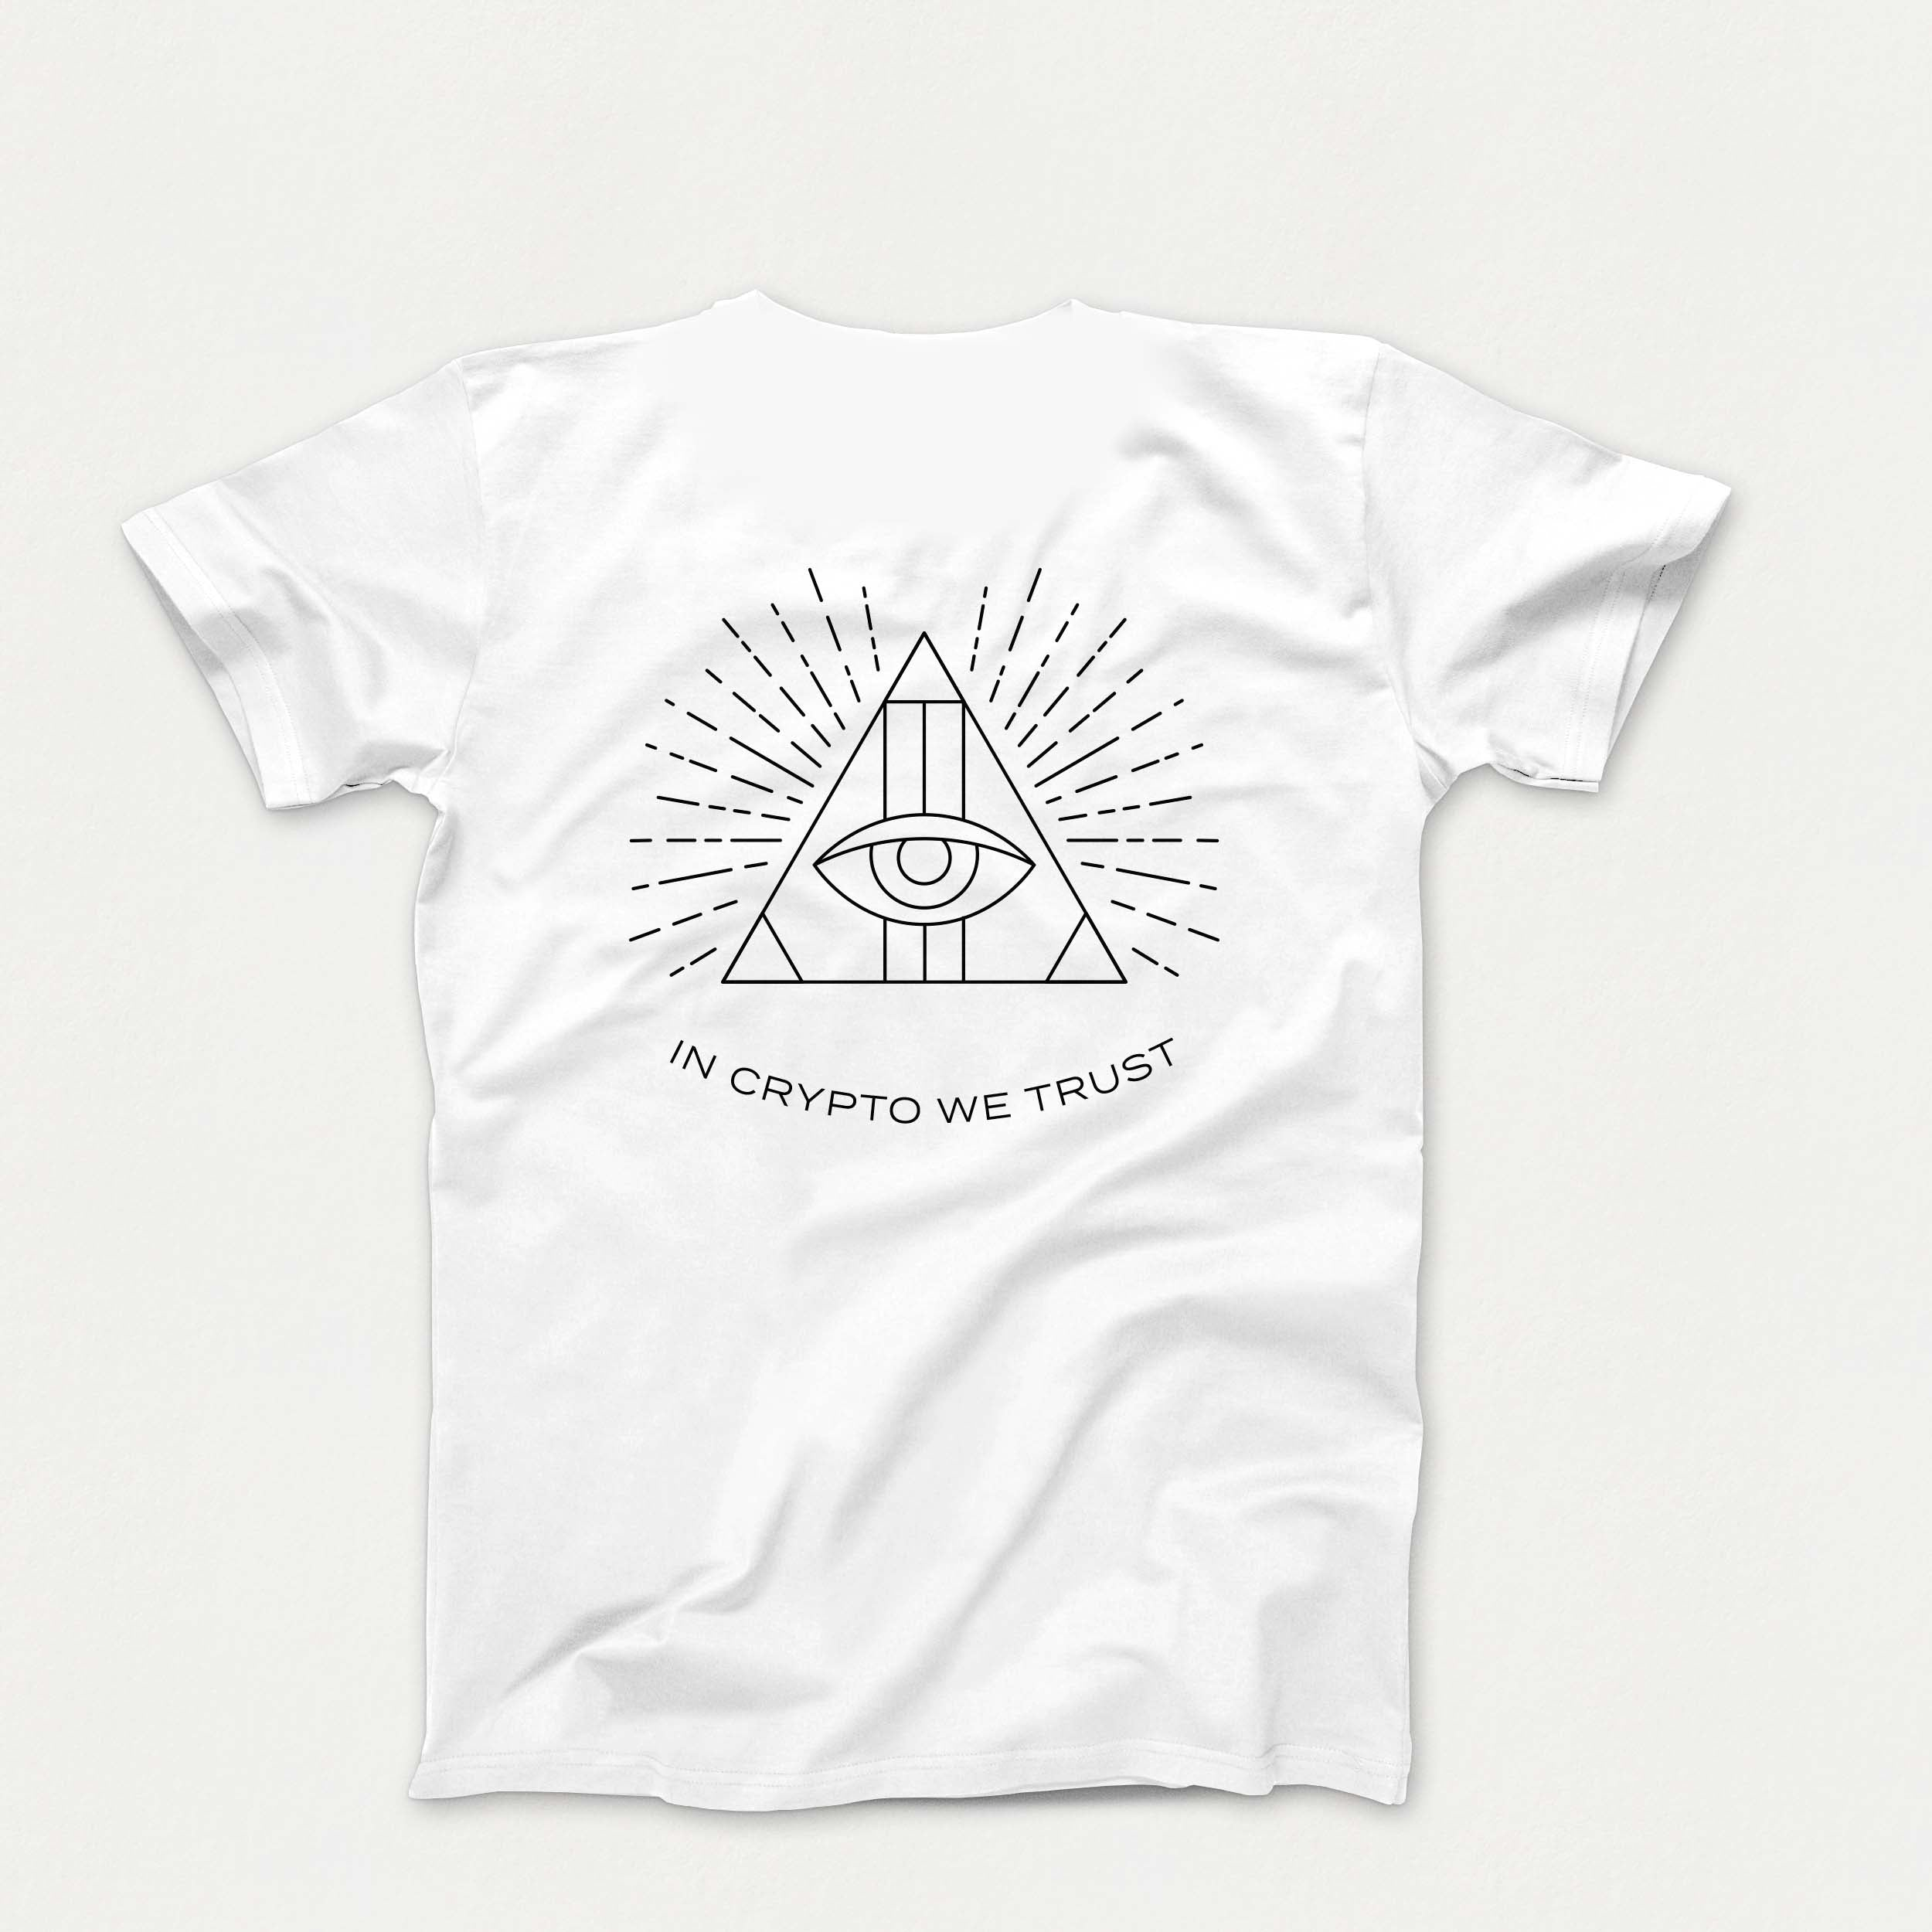 'In Crypto We Trust' T-Shirt (White)